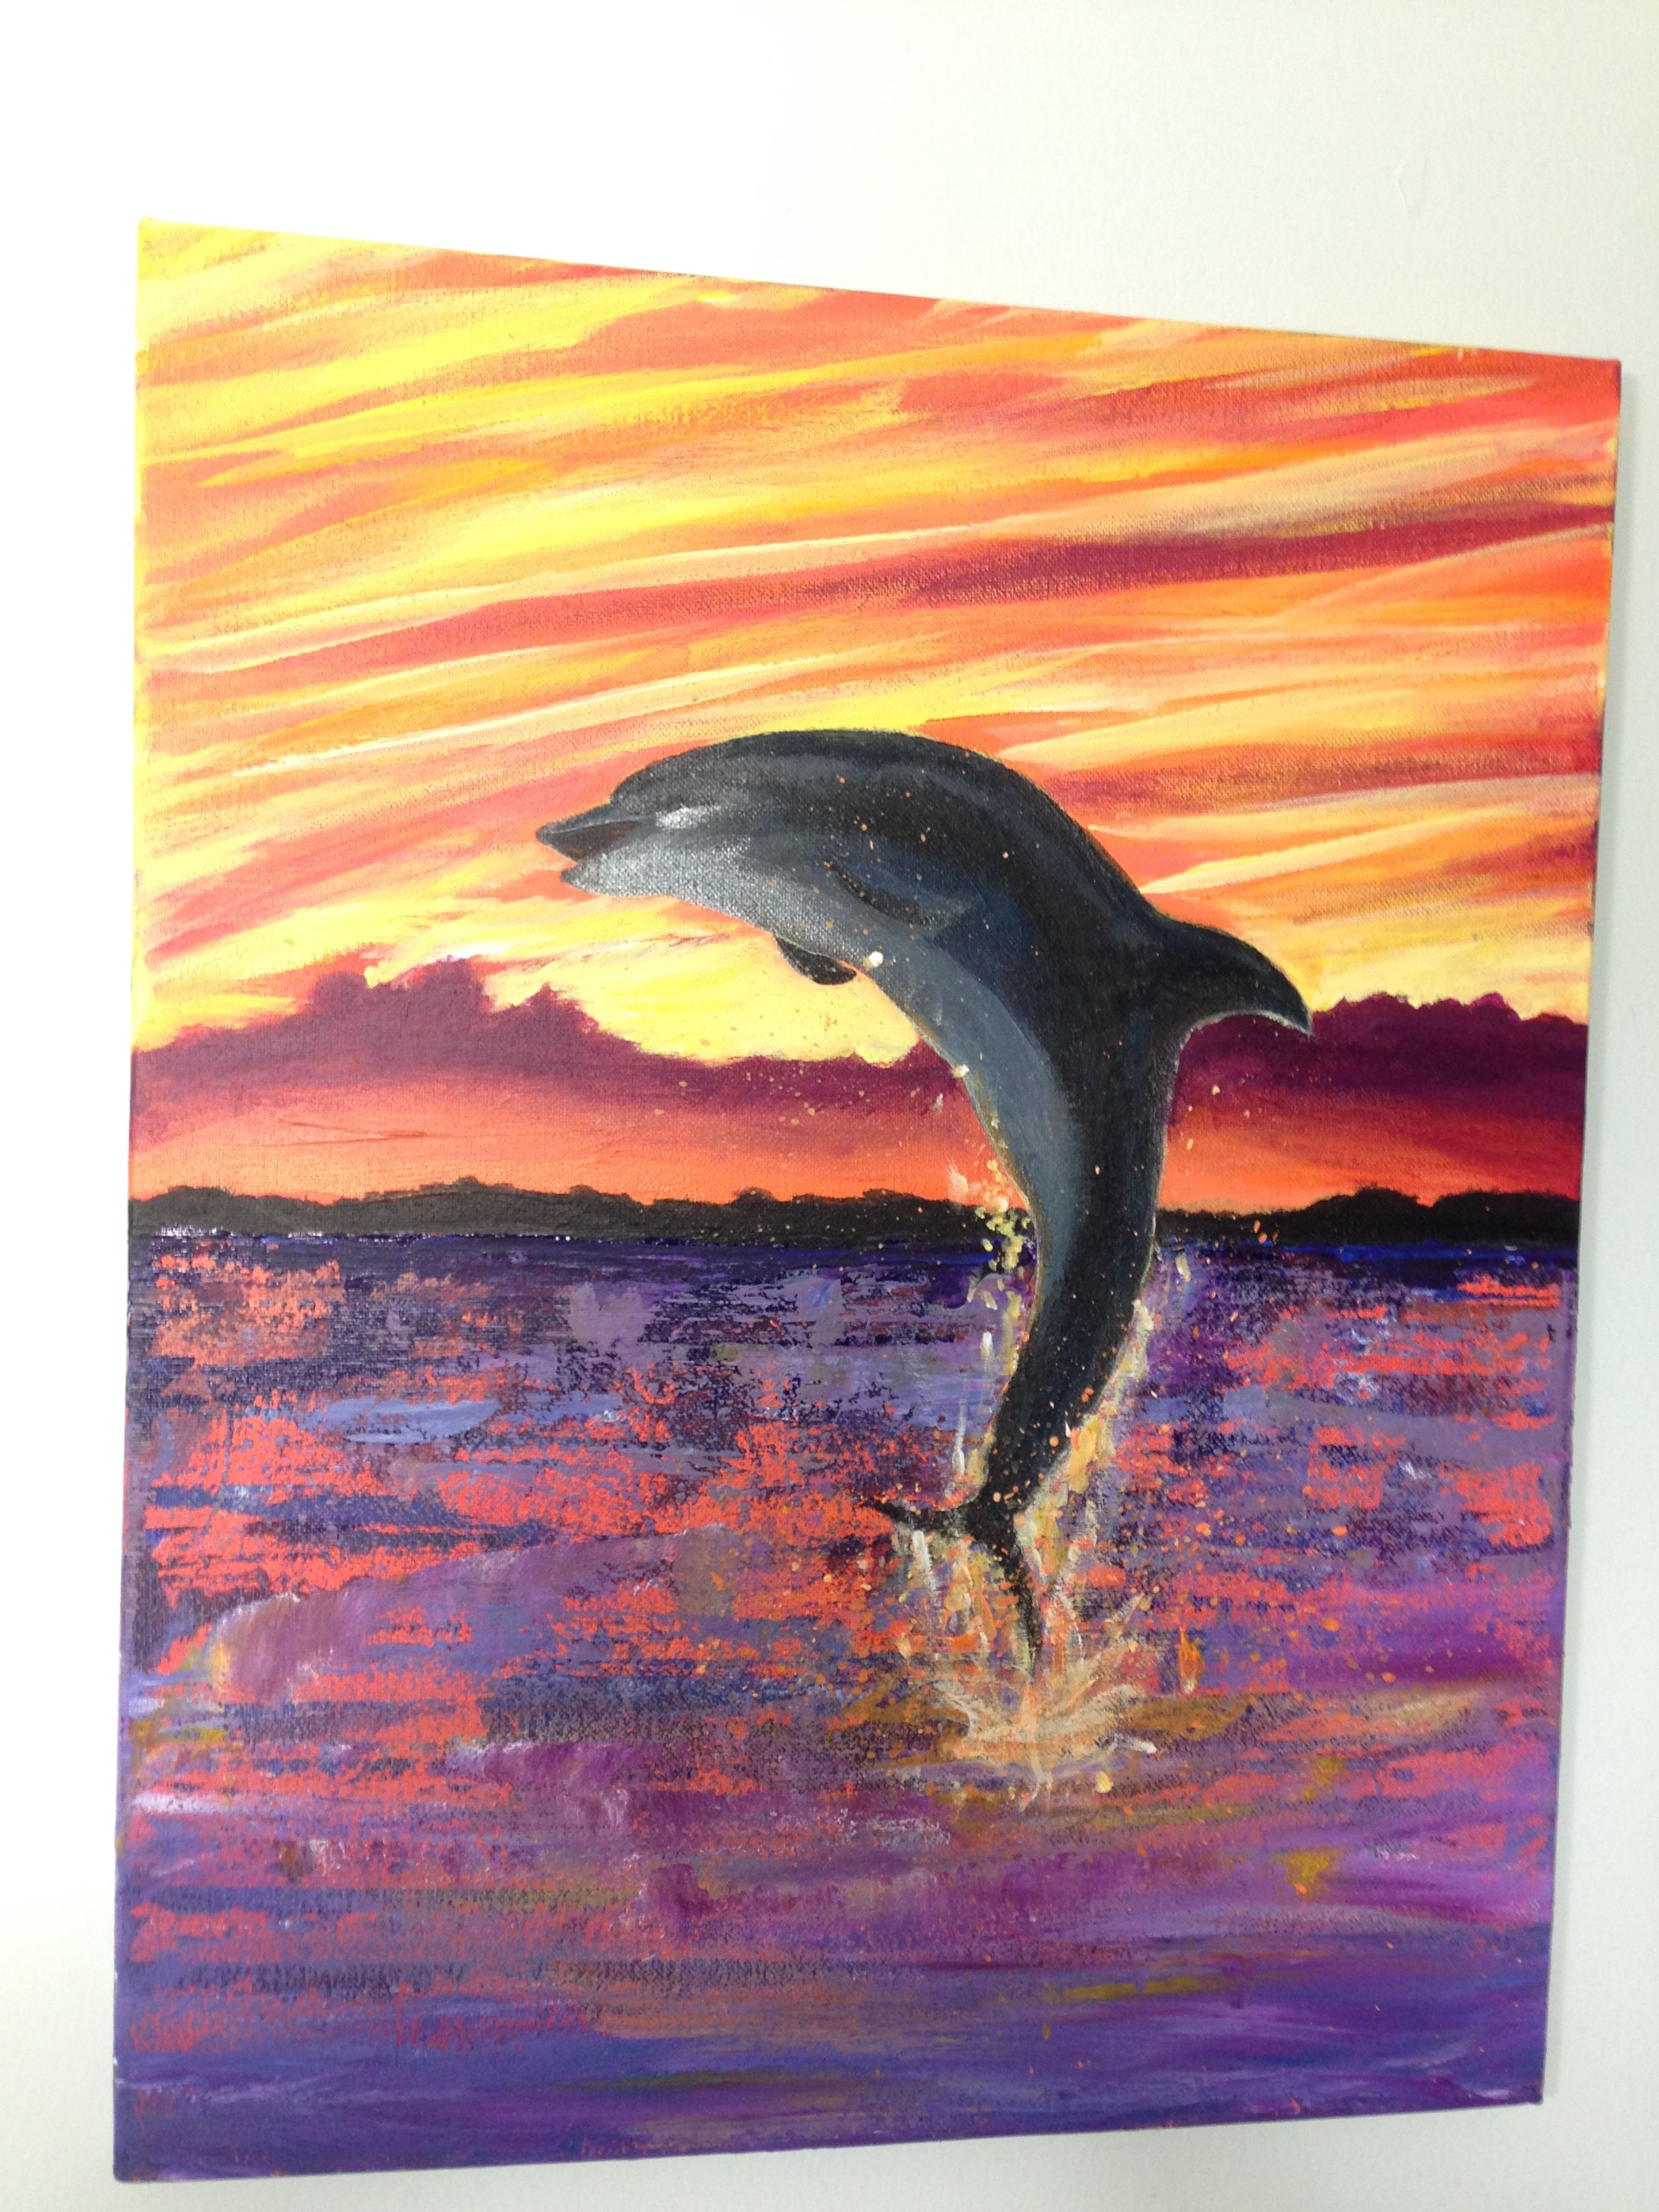 Dolphin at Sunrise Indian River Lagoon acrylic painting on canvas 16x20 inches by Vicky Lada in Beve Bruffey class.